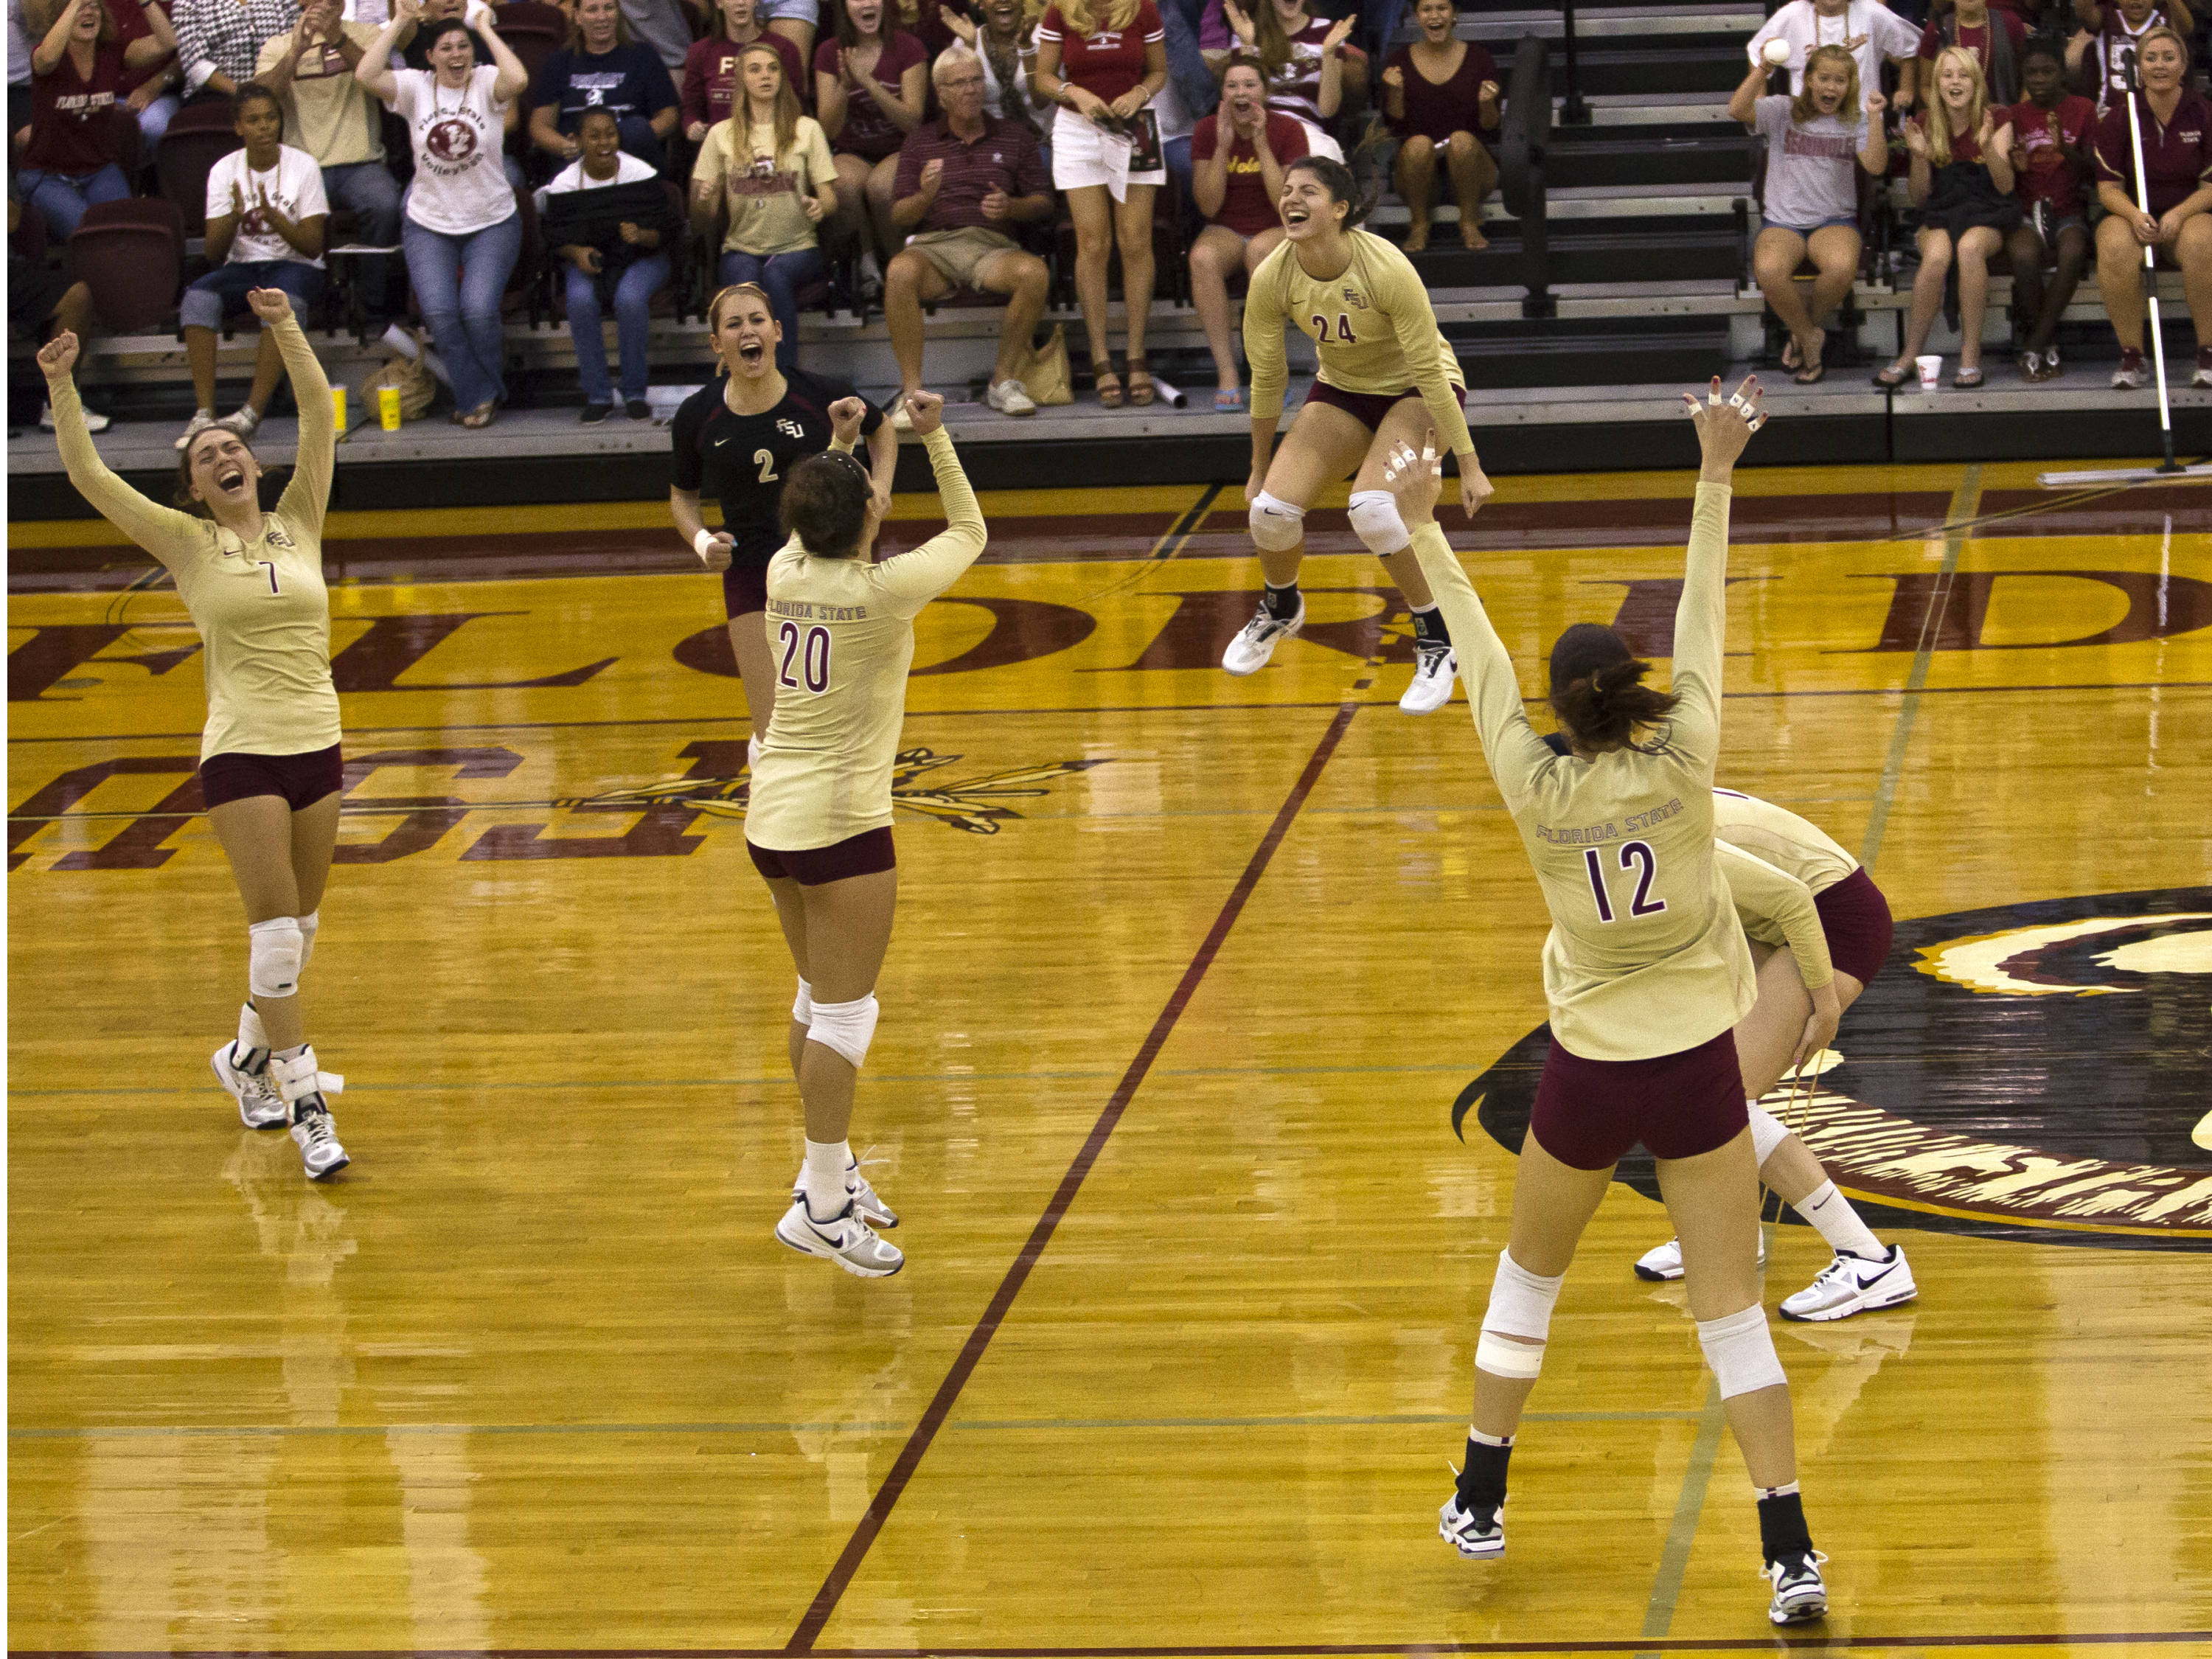 Big second set point, FSU vs NC, 10/05/12 (Photo by Steve Musco)